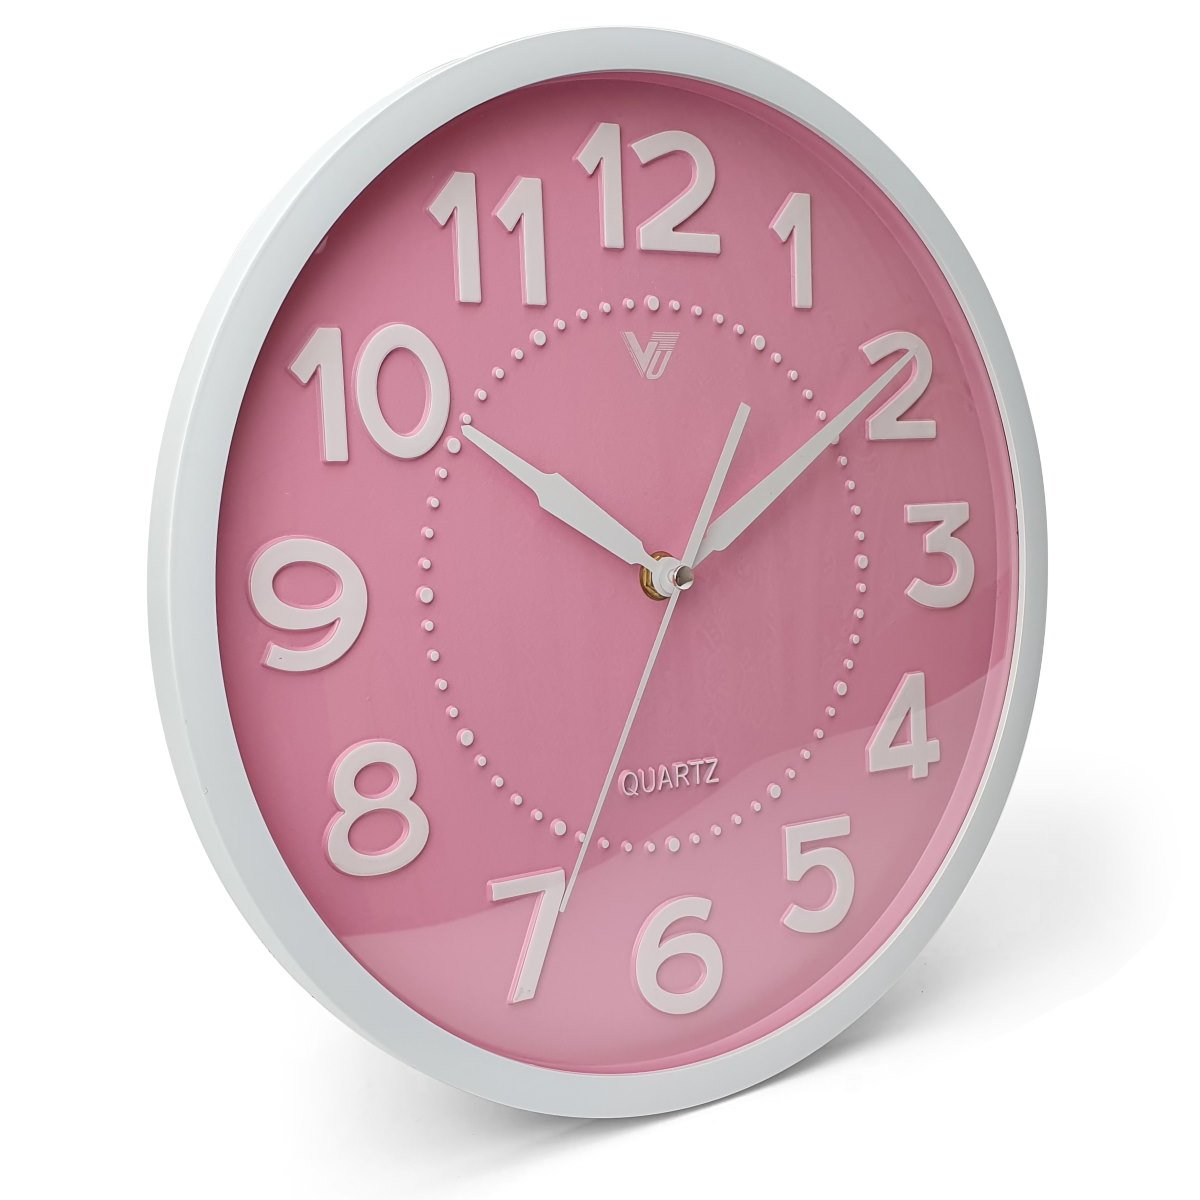 Victory Cayden 3D Numbers Domed Wall Clock Pink 31cm CWH 6249 PIN 1